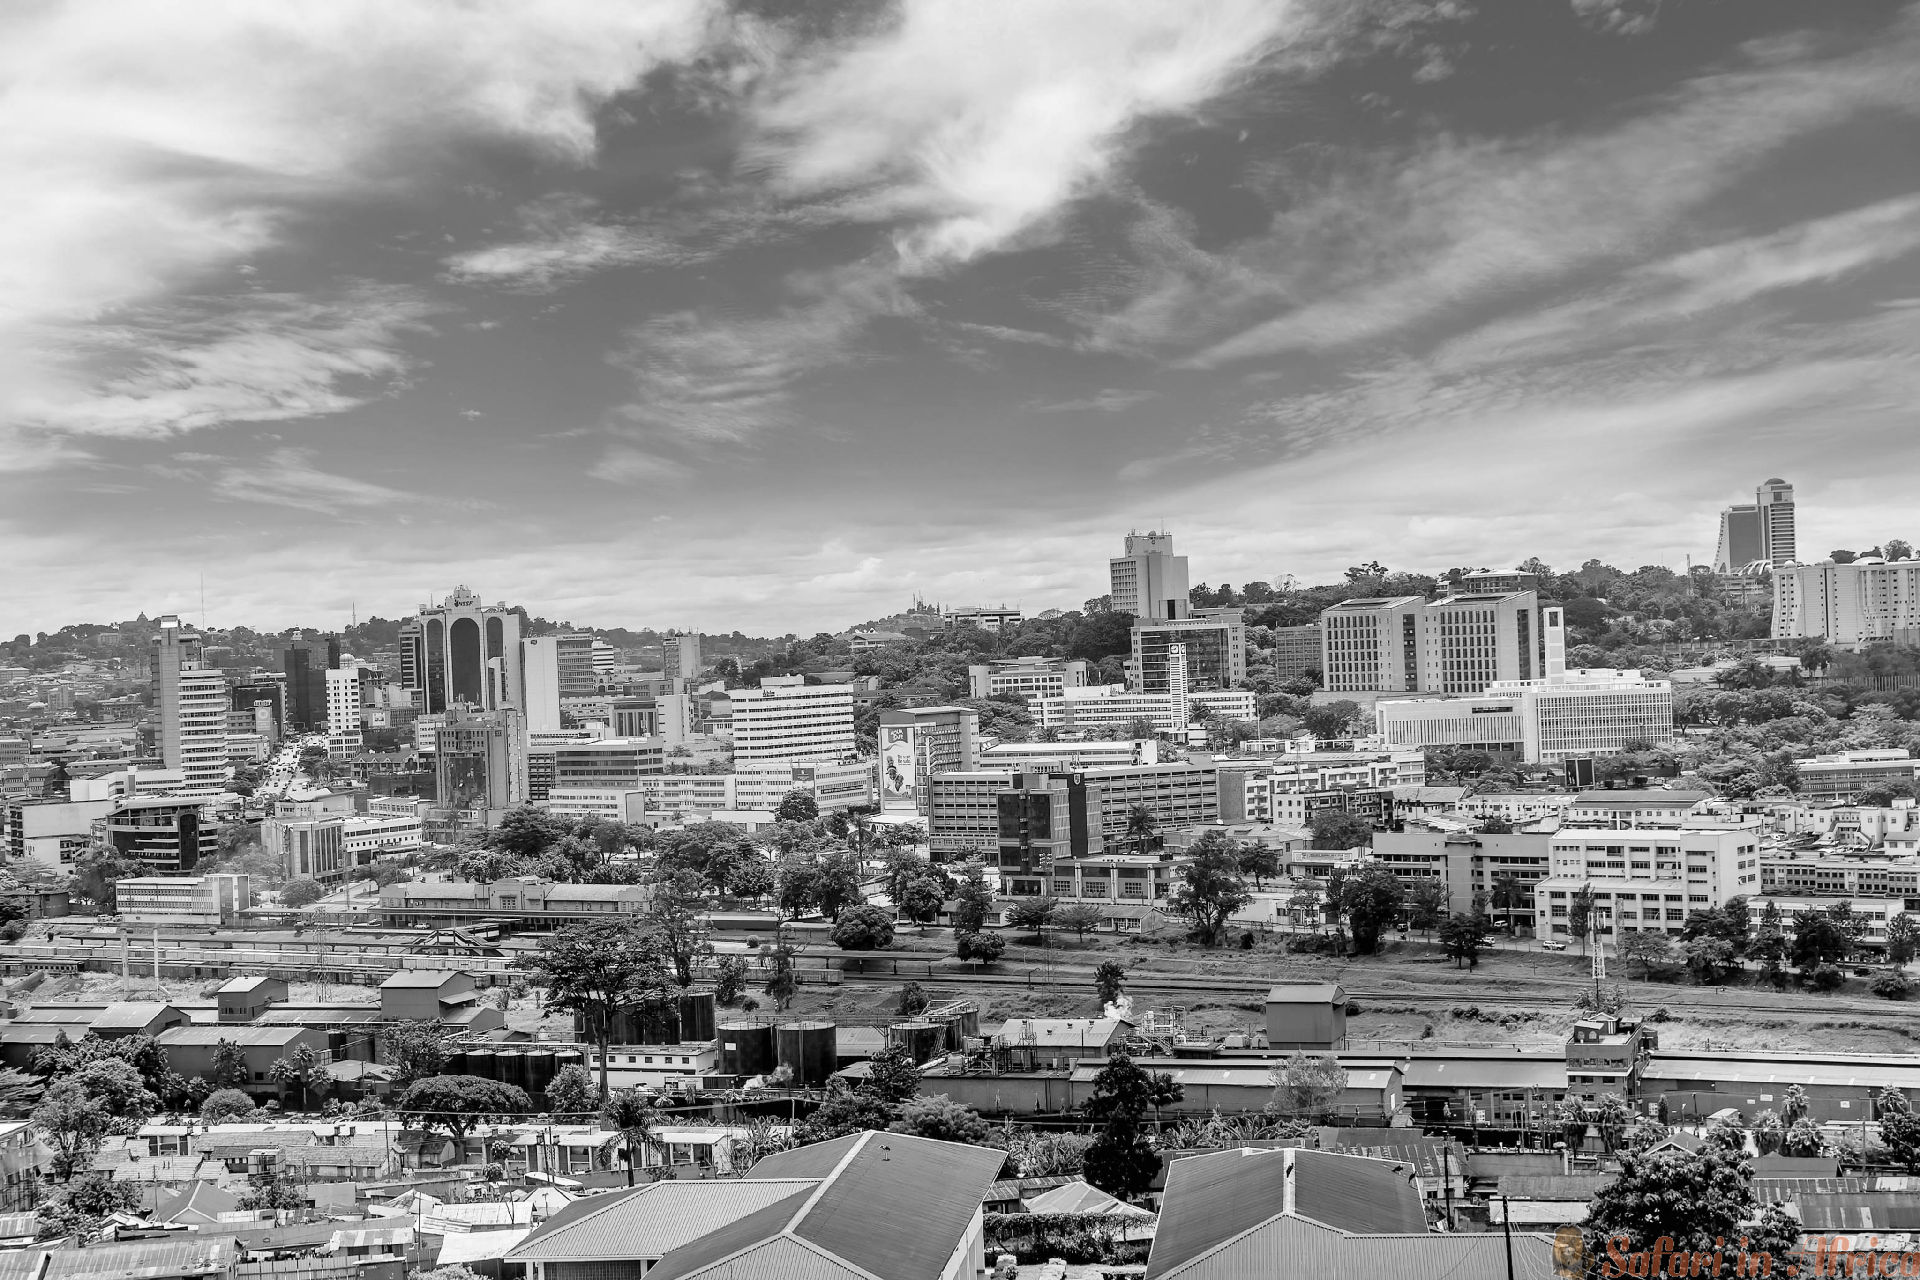 View from the above of the Capital city Kampala in Uganda B&W